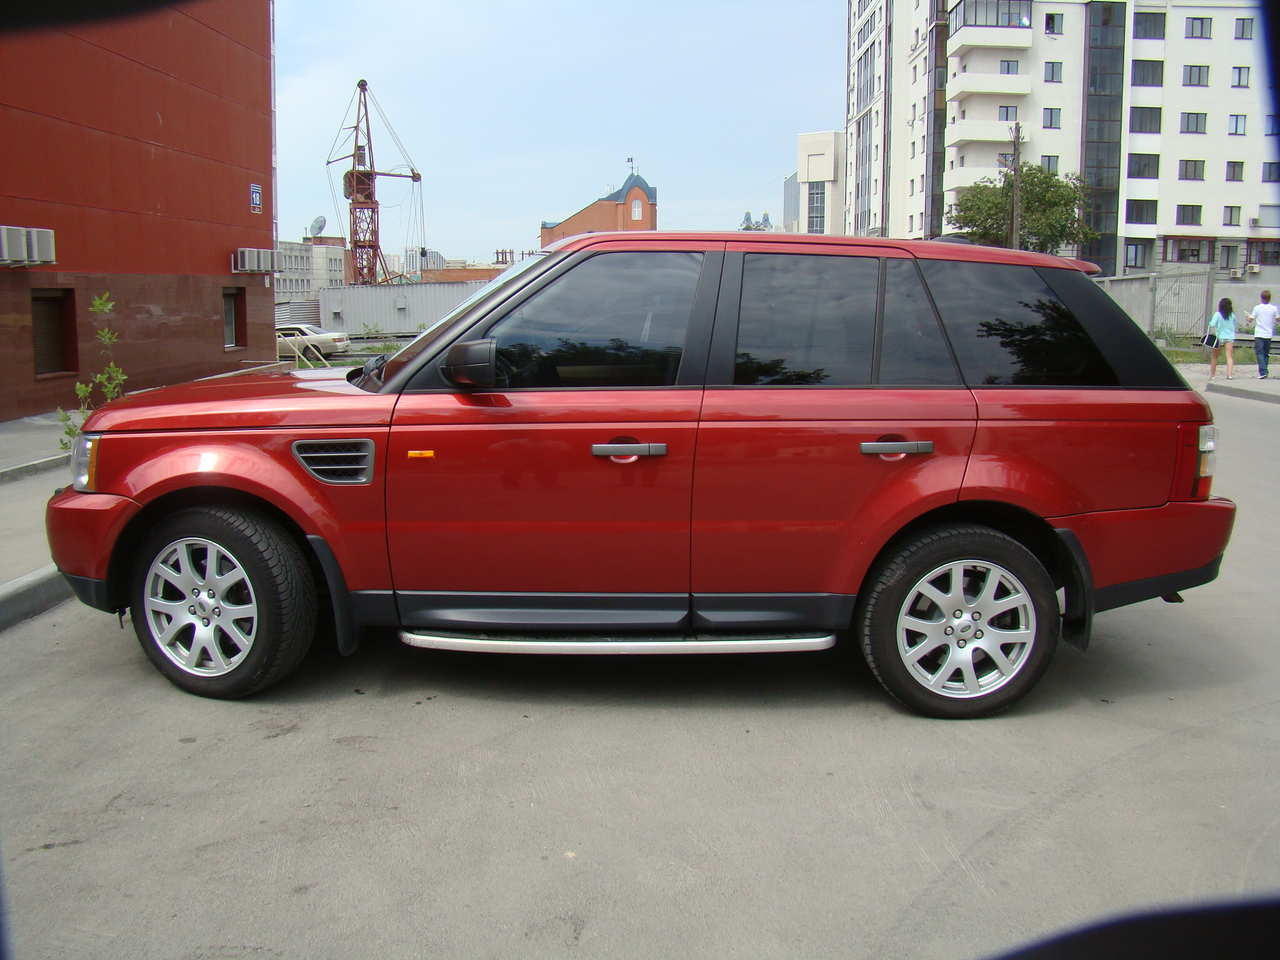 2007 land rover range rover sport photos 4 4 gasoline automatic for sale. Black Bedroom Furniture Sets. Home Design Ideas